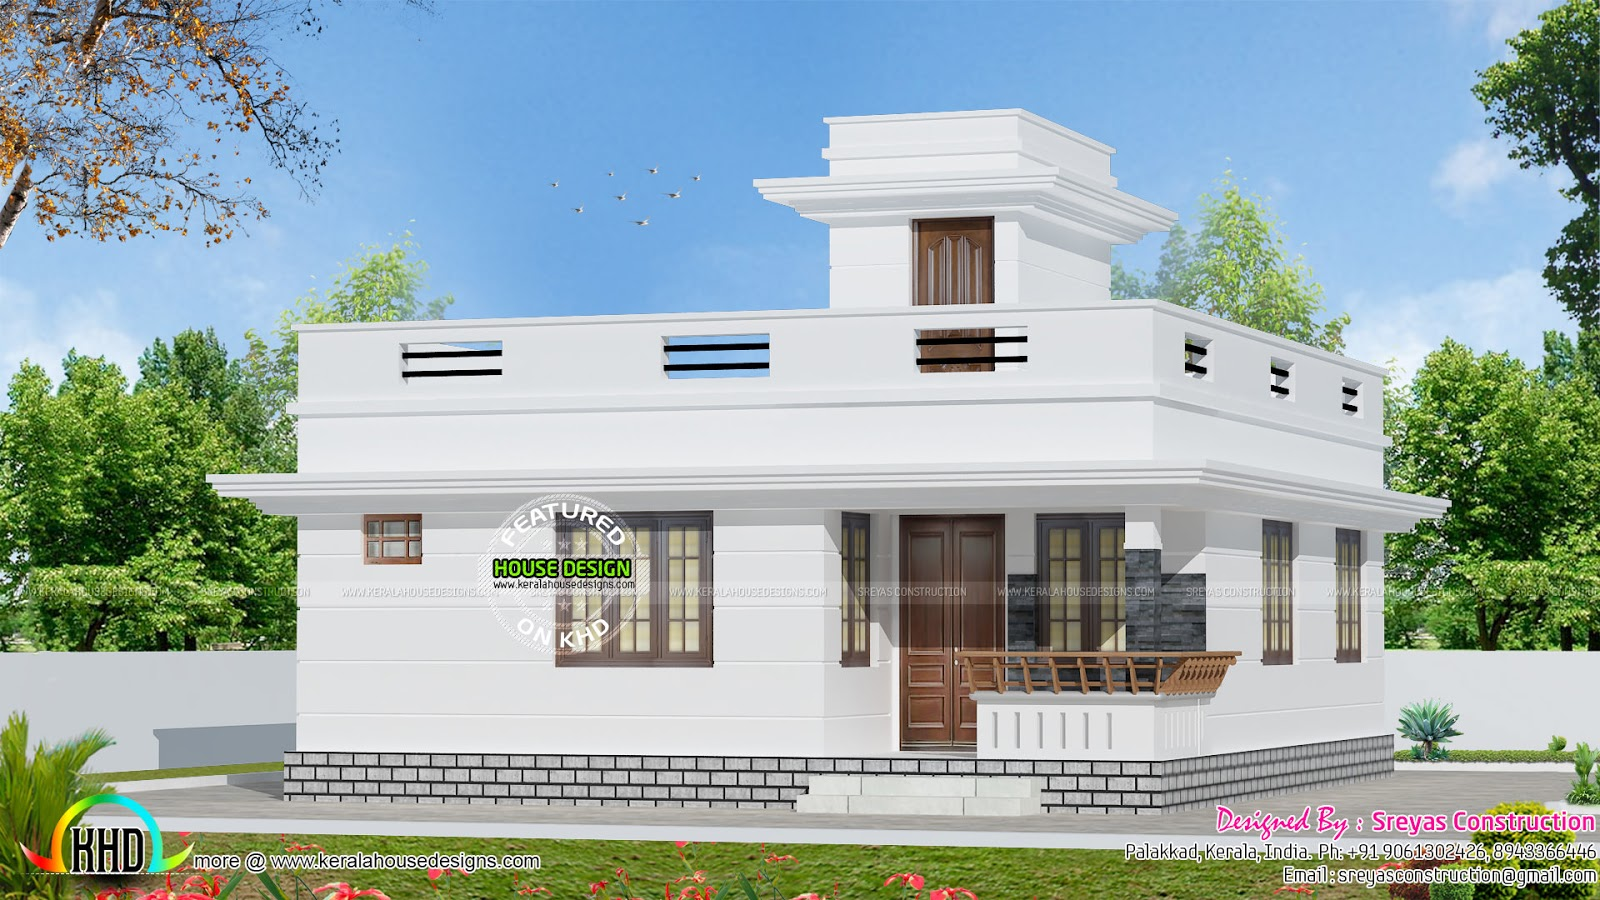 882 sq ft small house architecture kerala home design for Small contemporary house plans in kerala